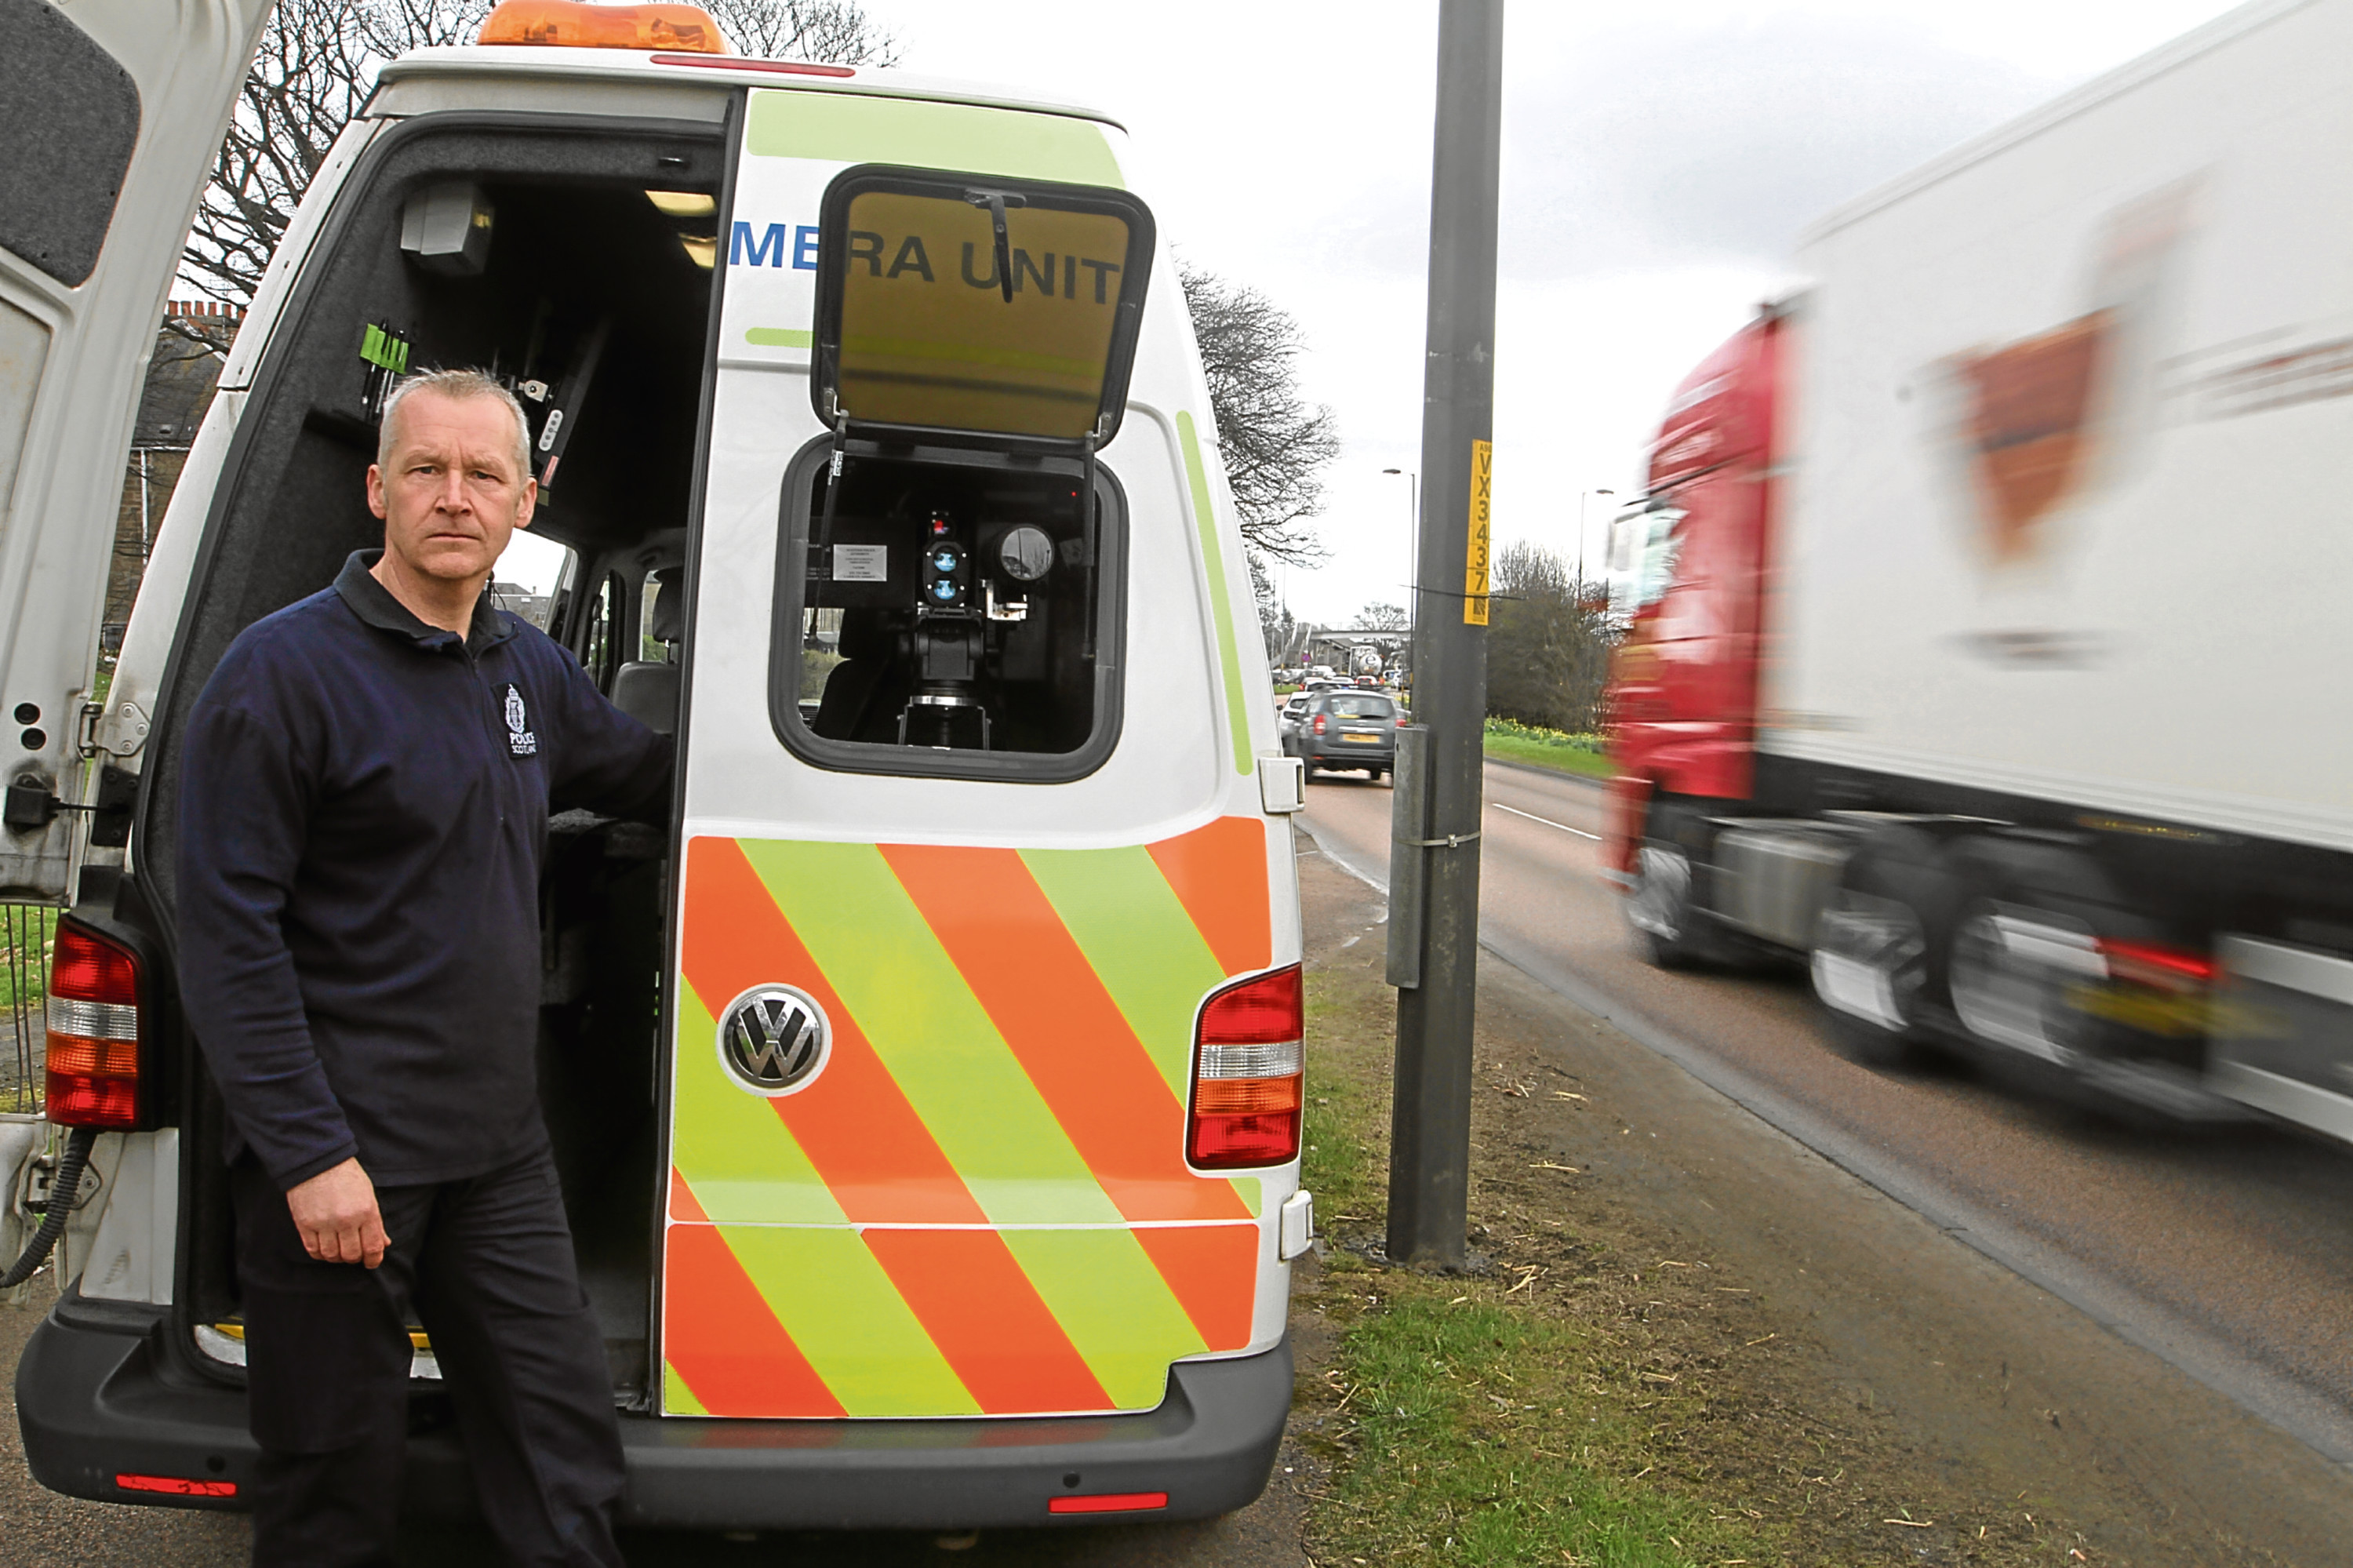 Safety camera technician Scott Aiken outside a speed van on Kingsway near the junction of Charlotte Street